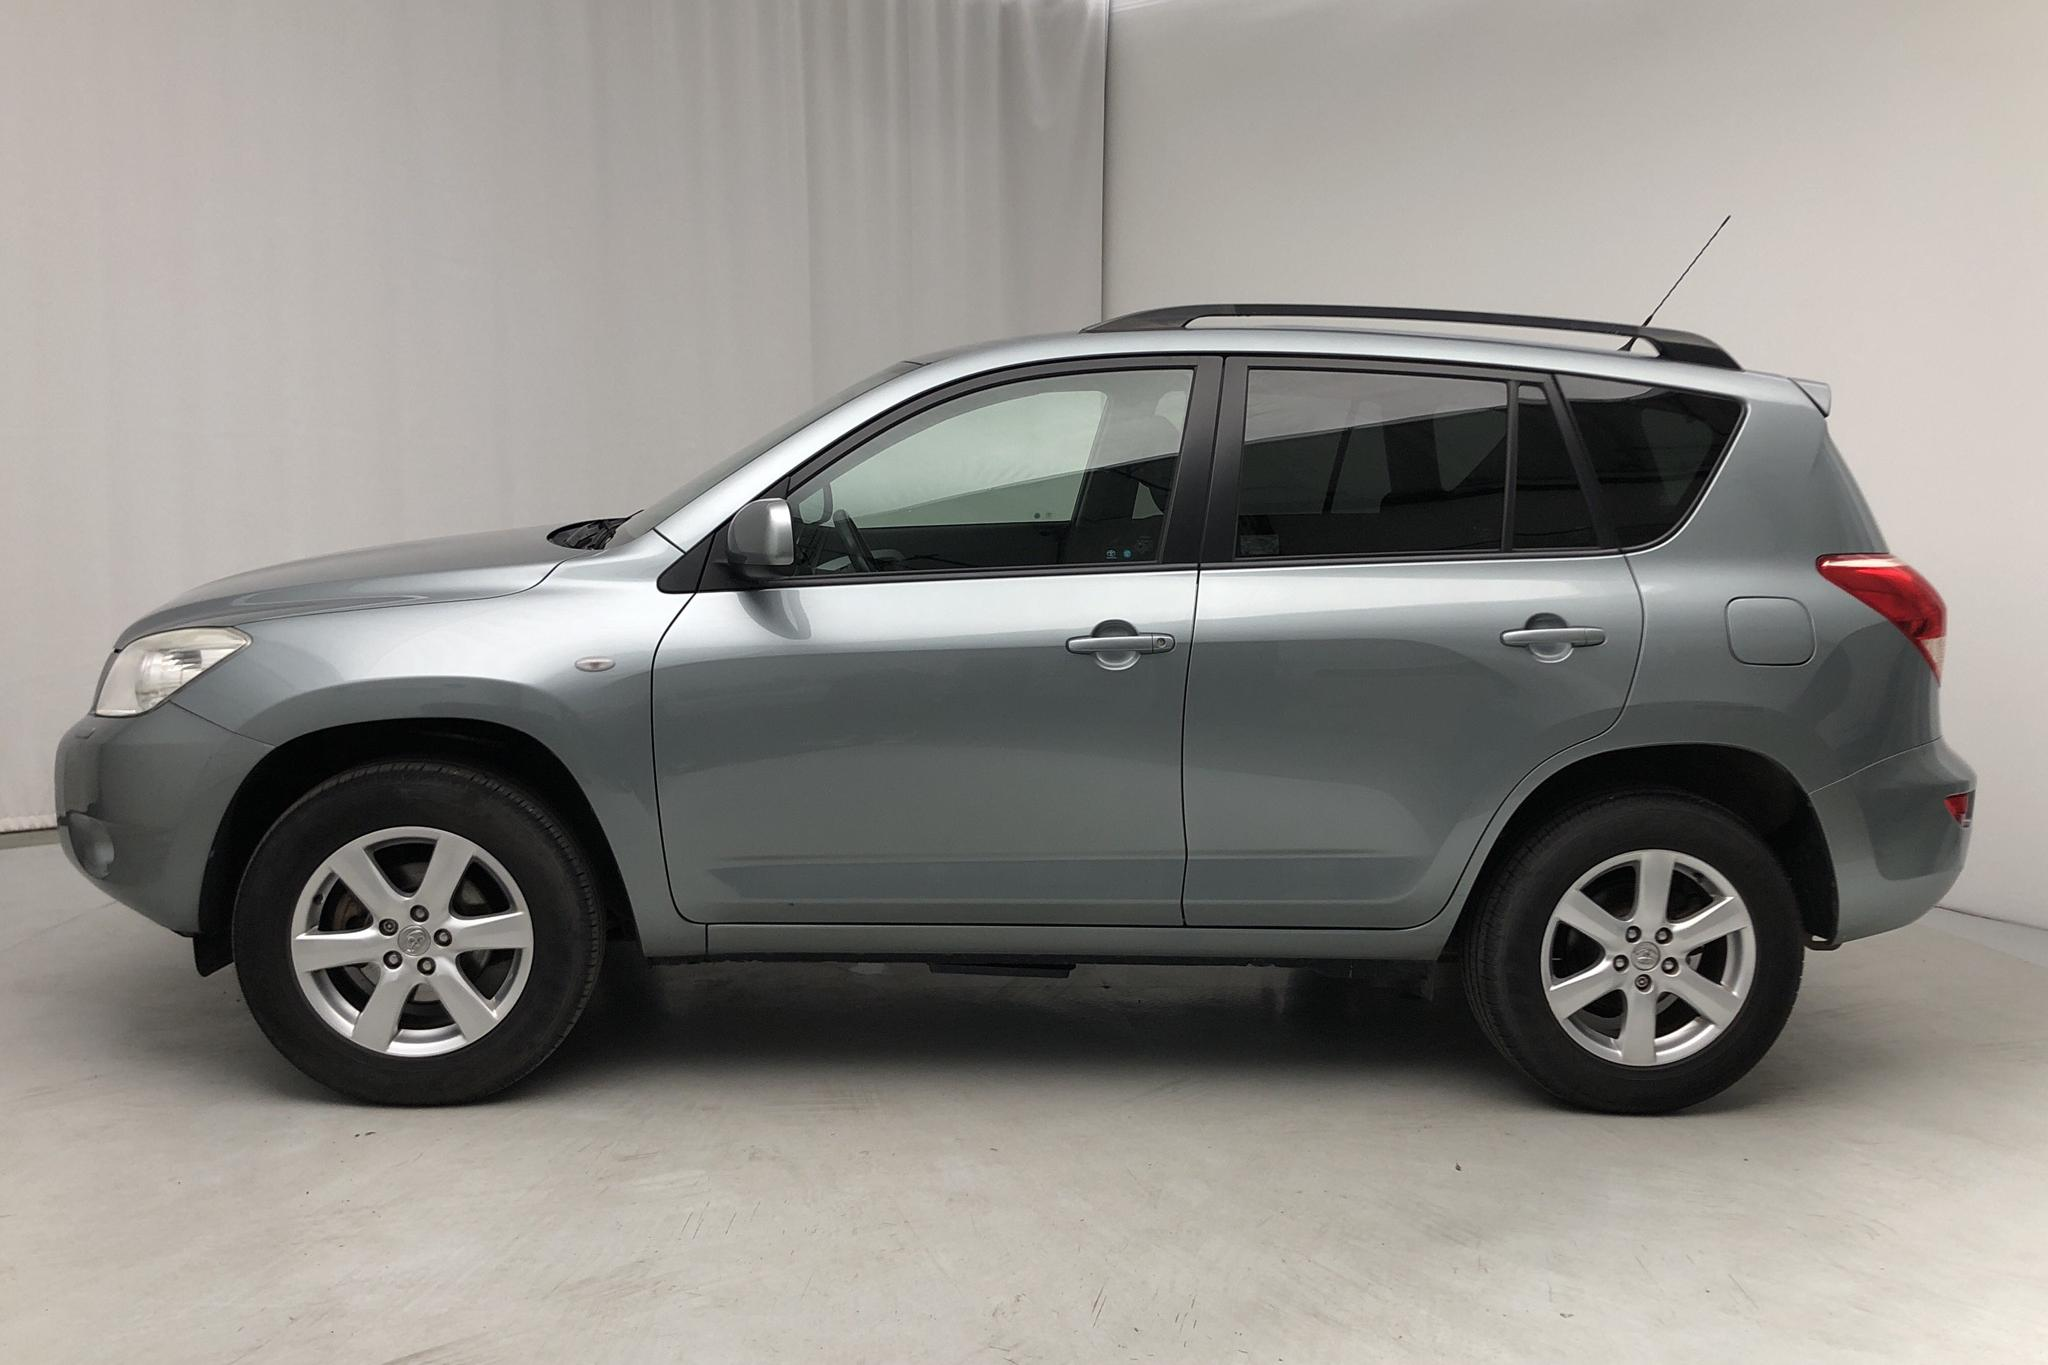 Toyota RAV4 2.0 (152hk) - 109 000 km - Manual - Light Green - 2008